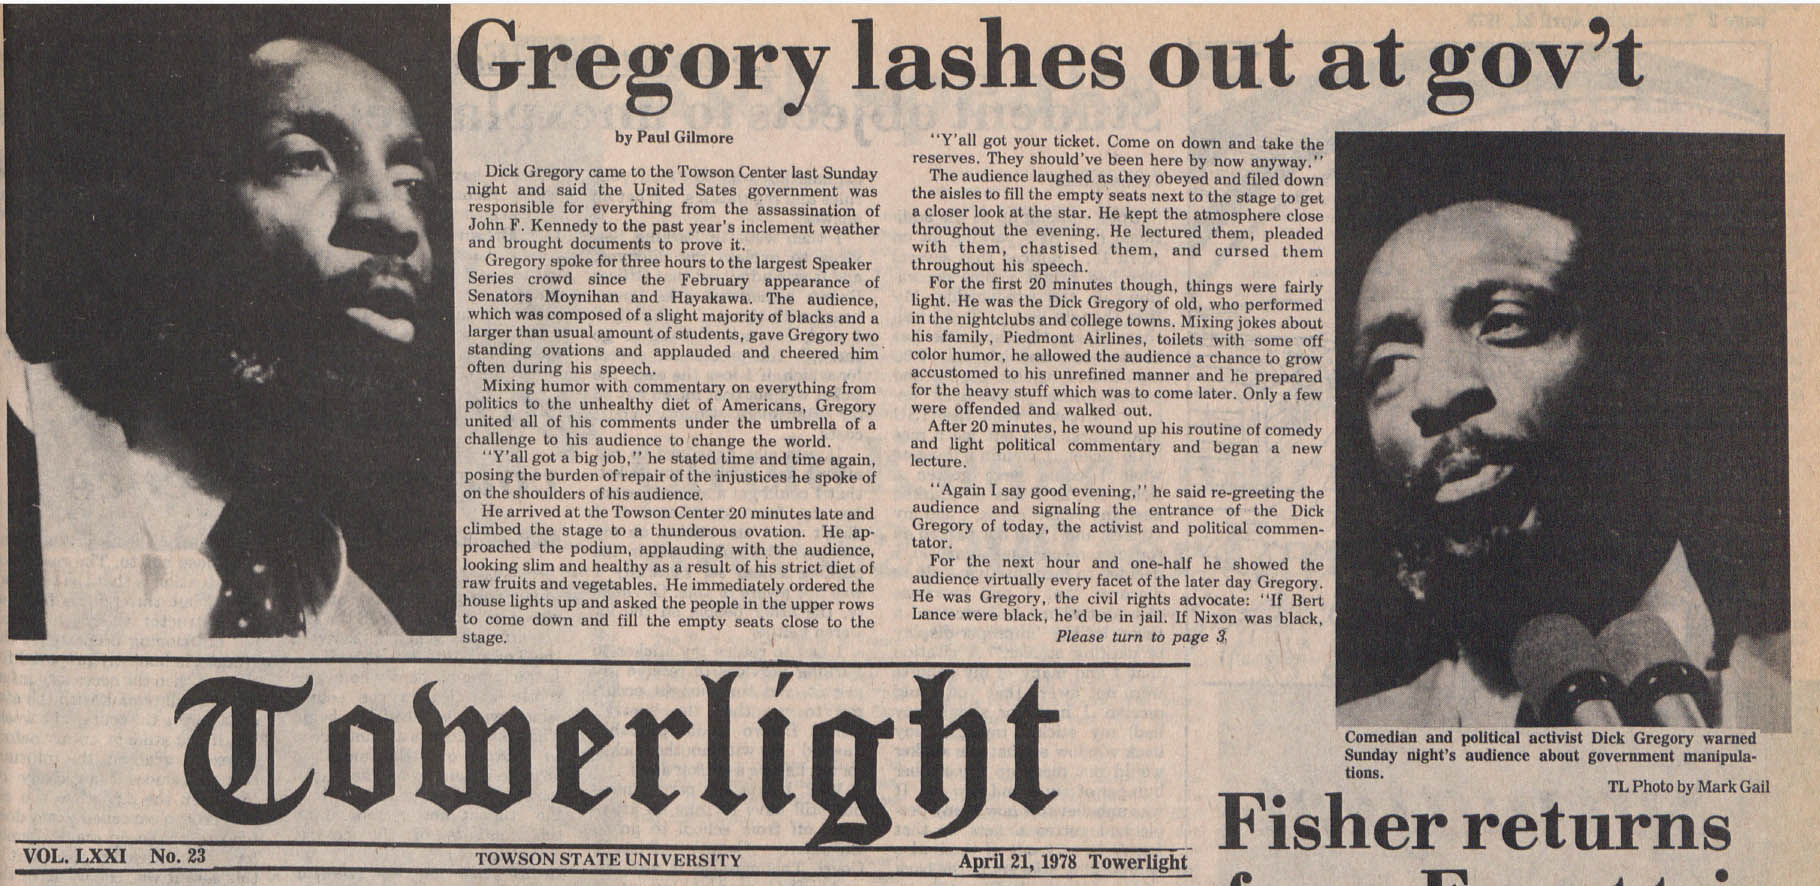 Article showing pictures of Dick Gregory and parts of his speech.